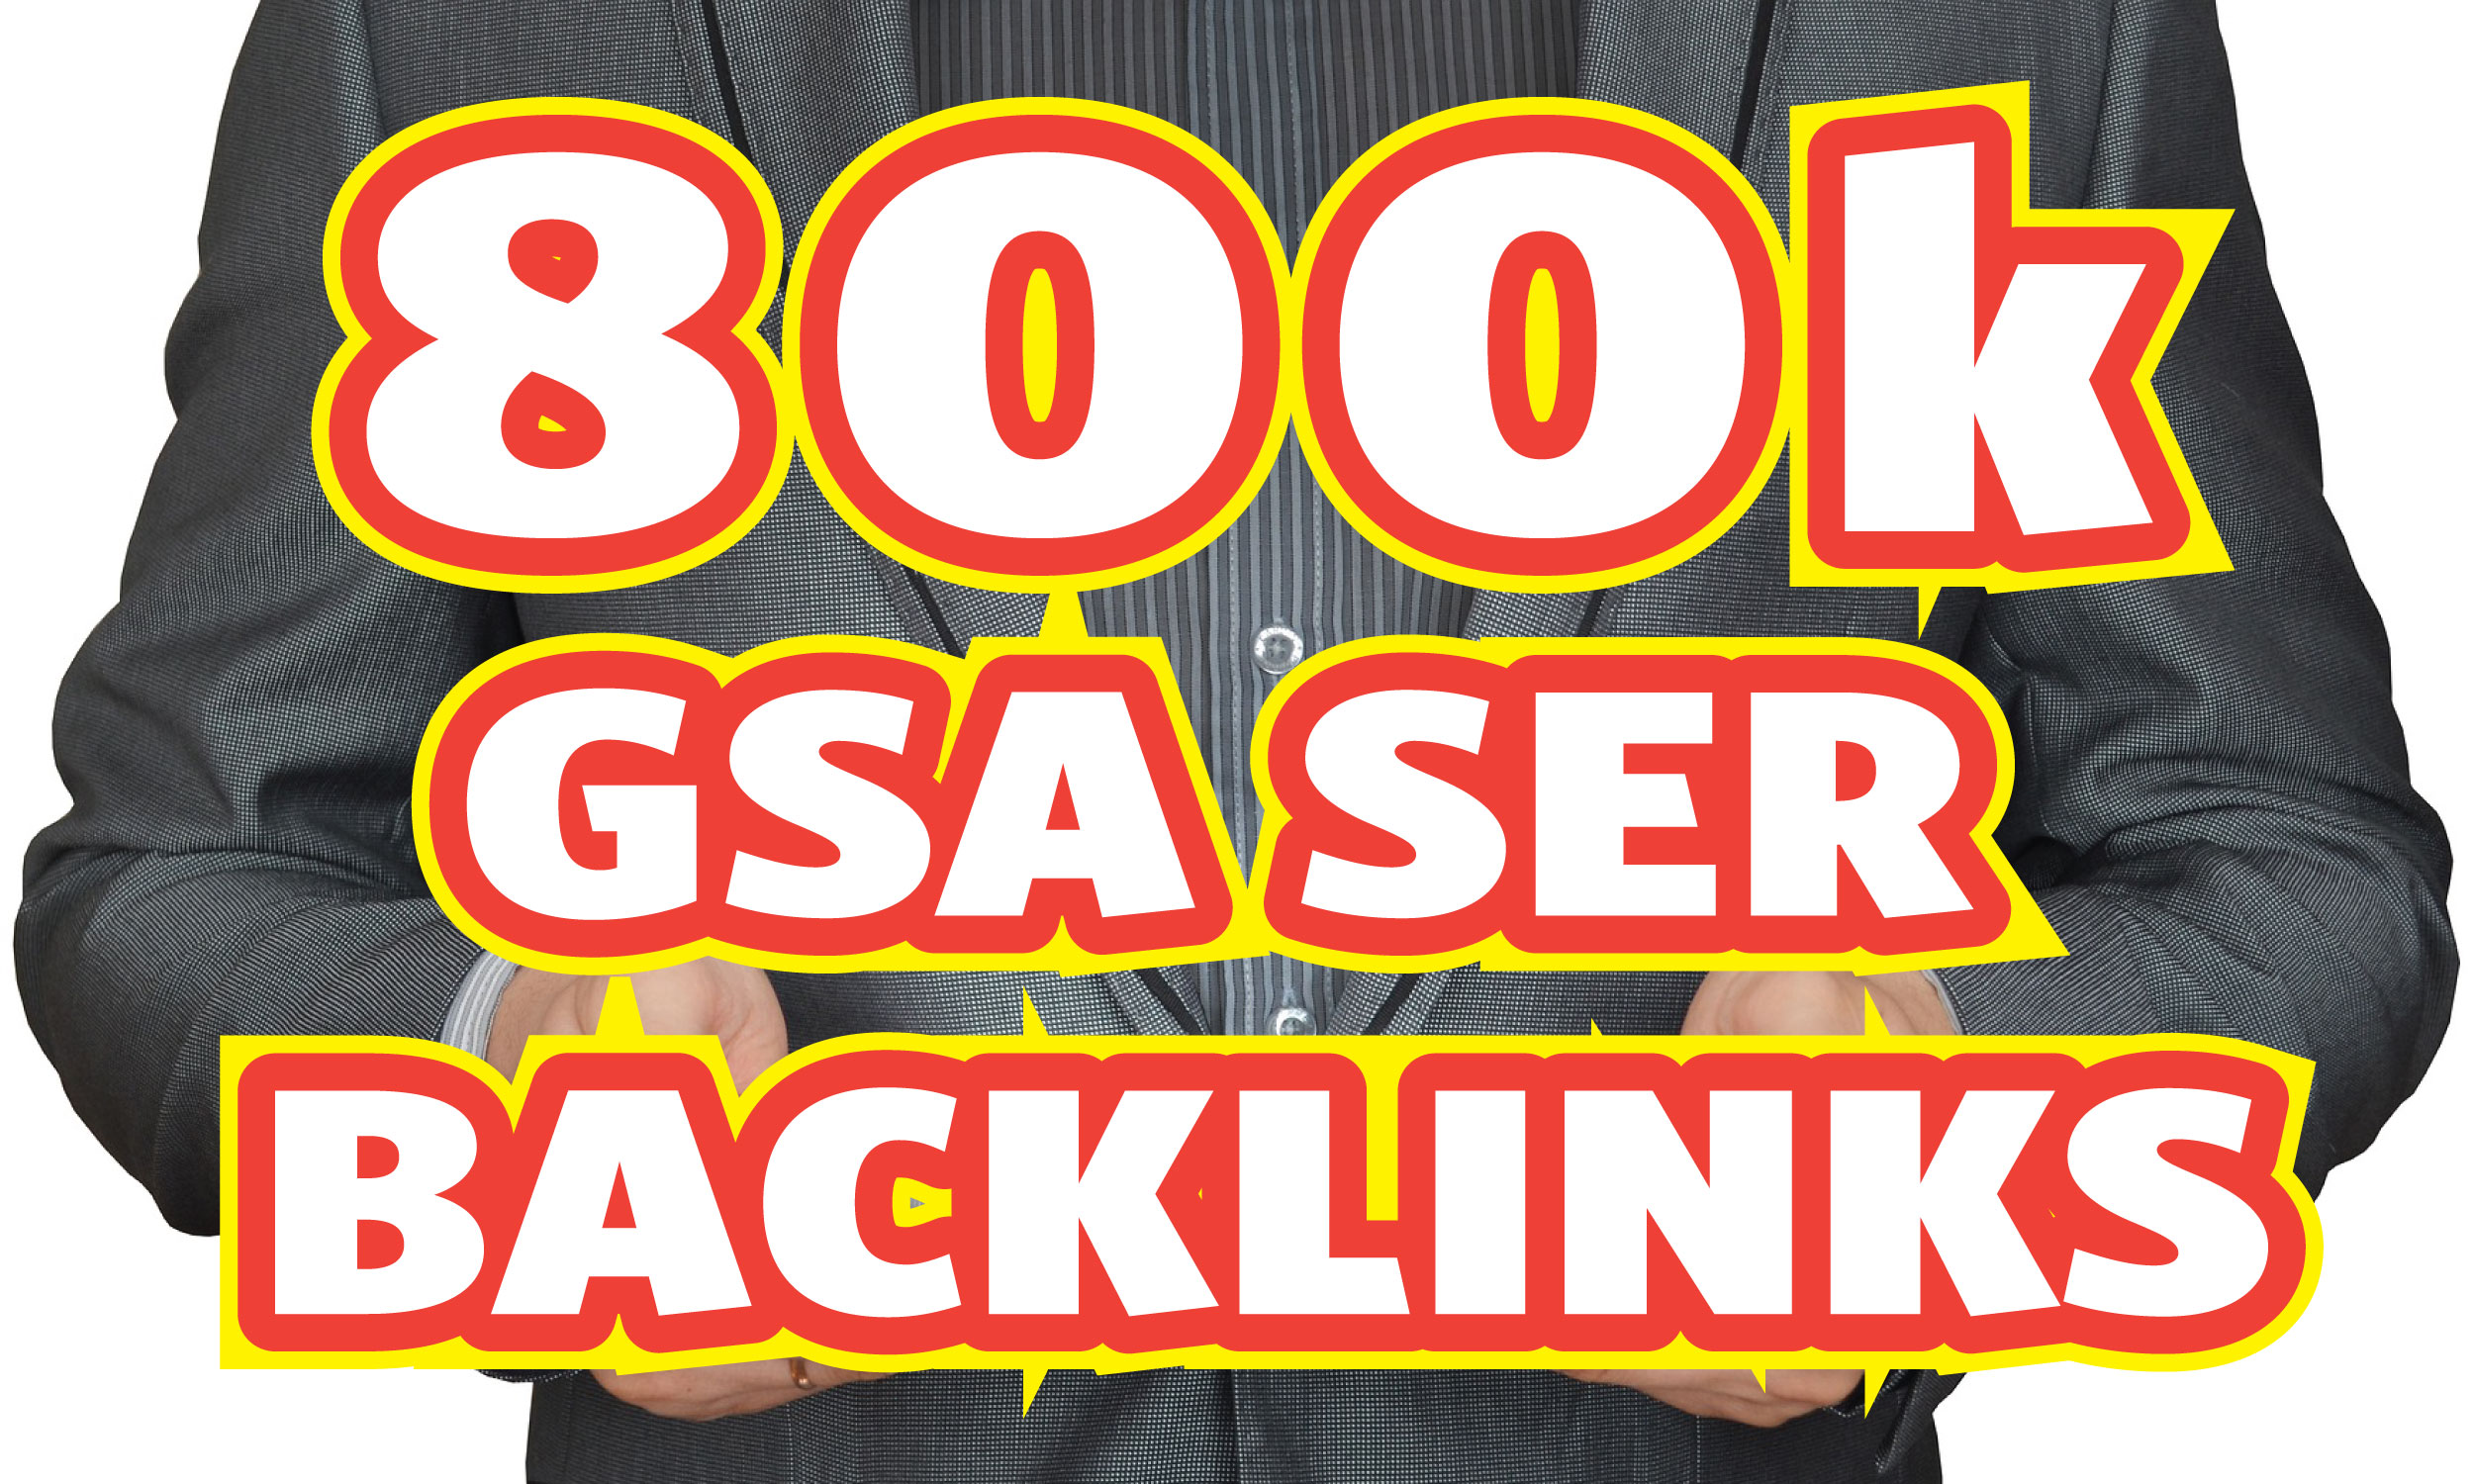 Provide 800K GSA SER Backlinks for Fastest Rankings